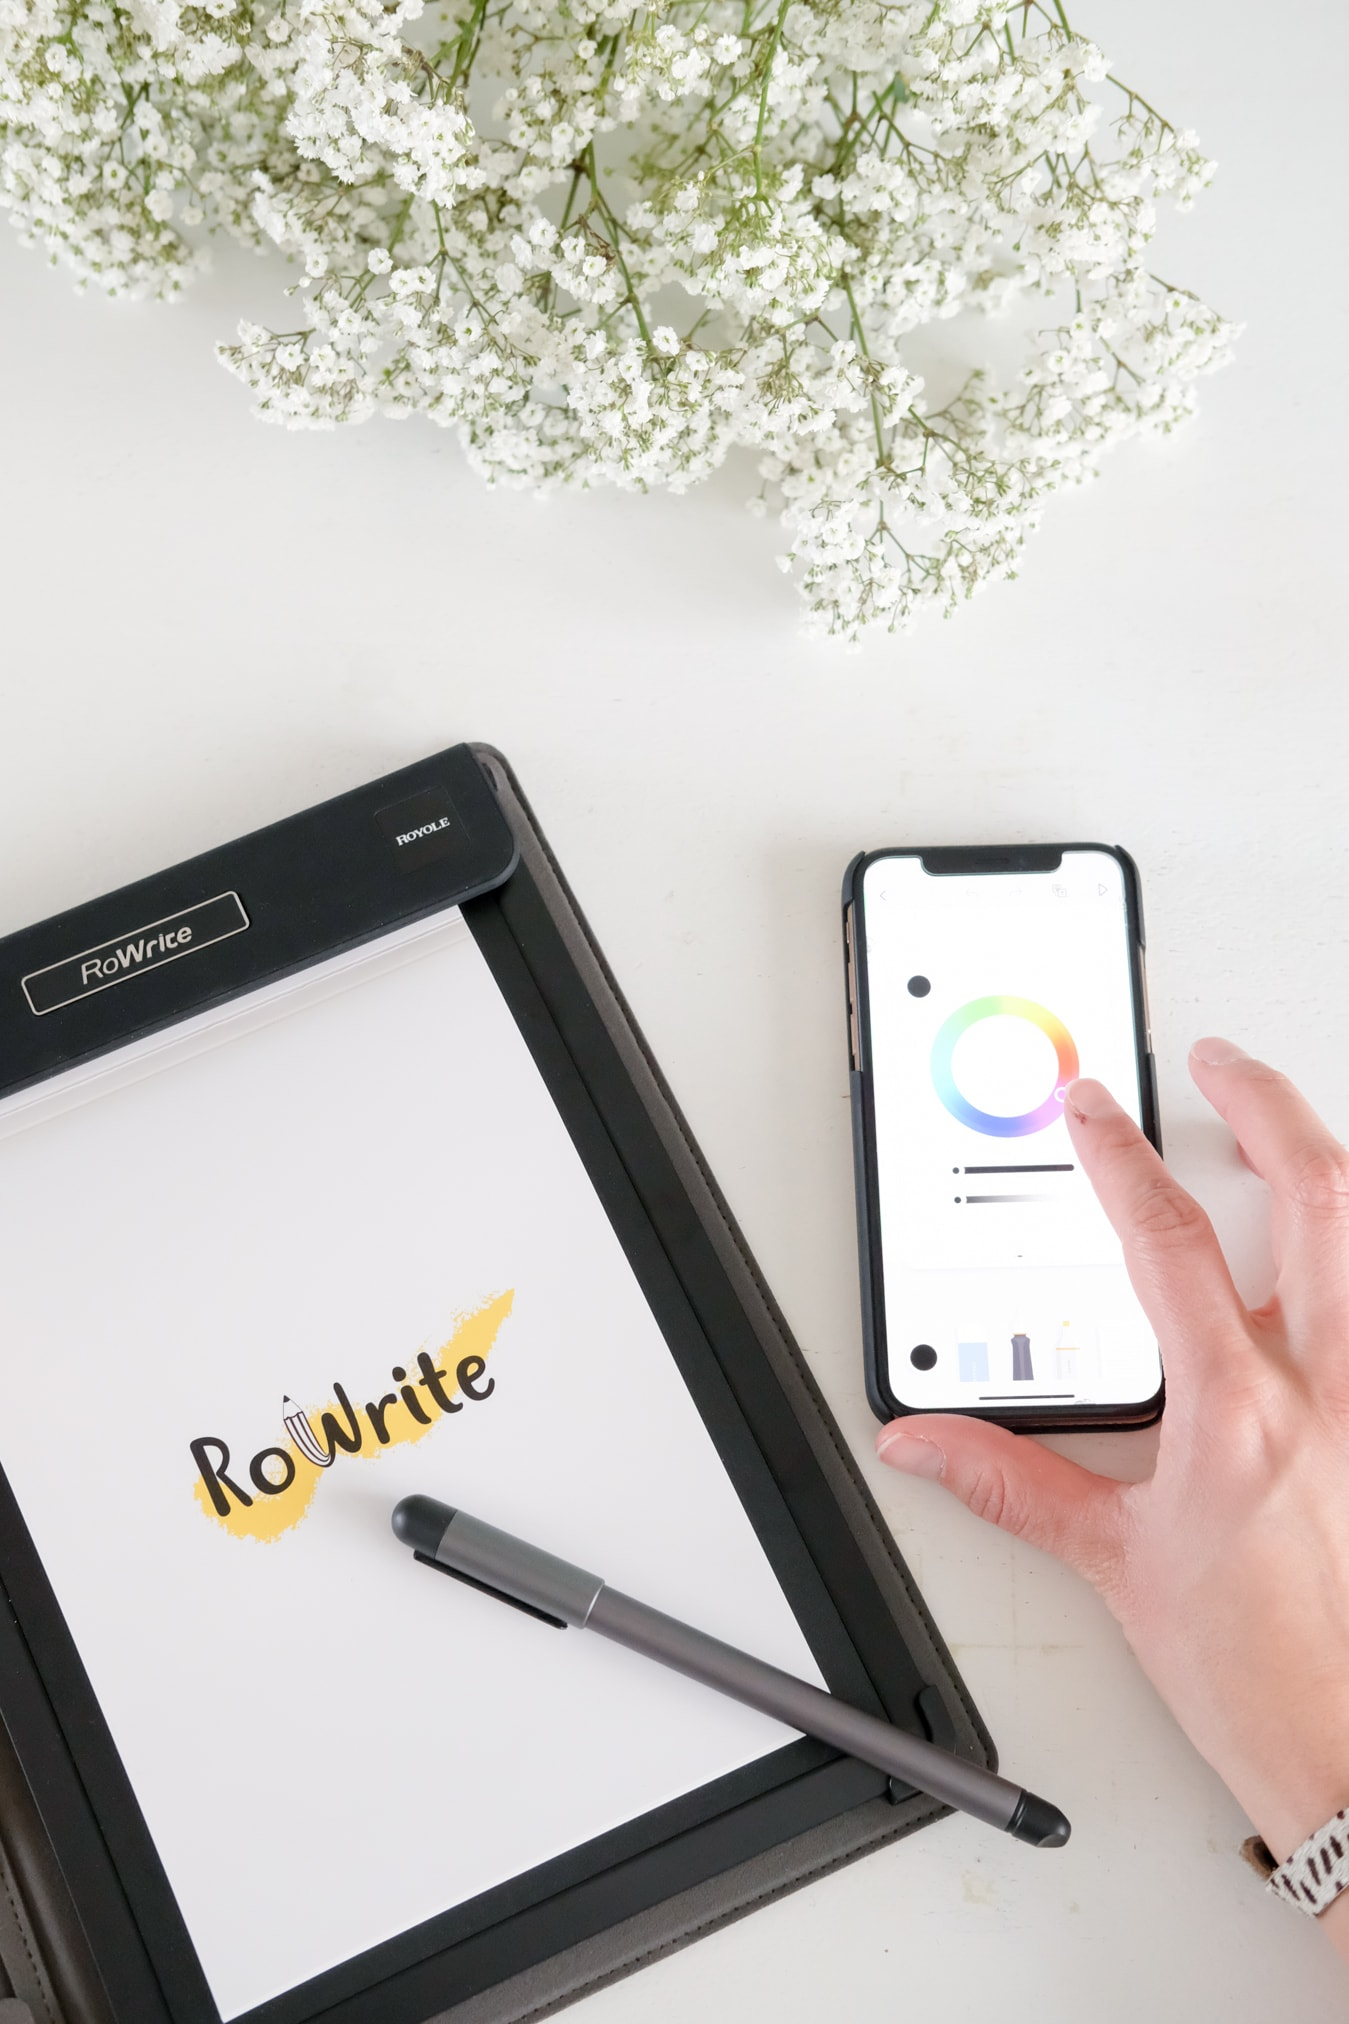 royole rowrite app review